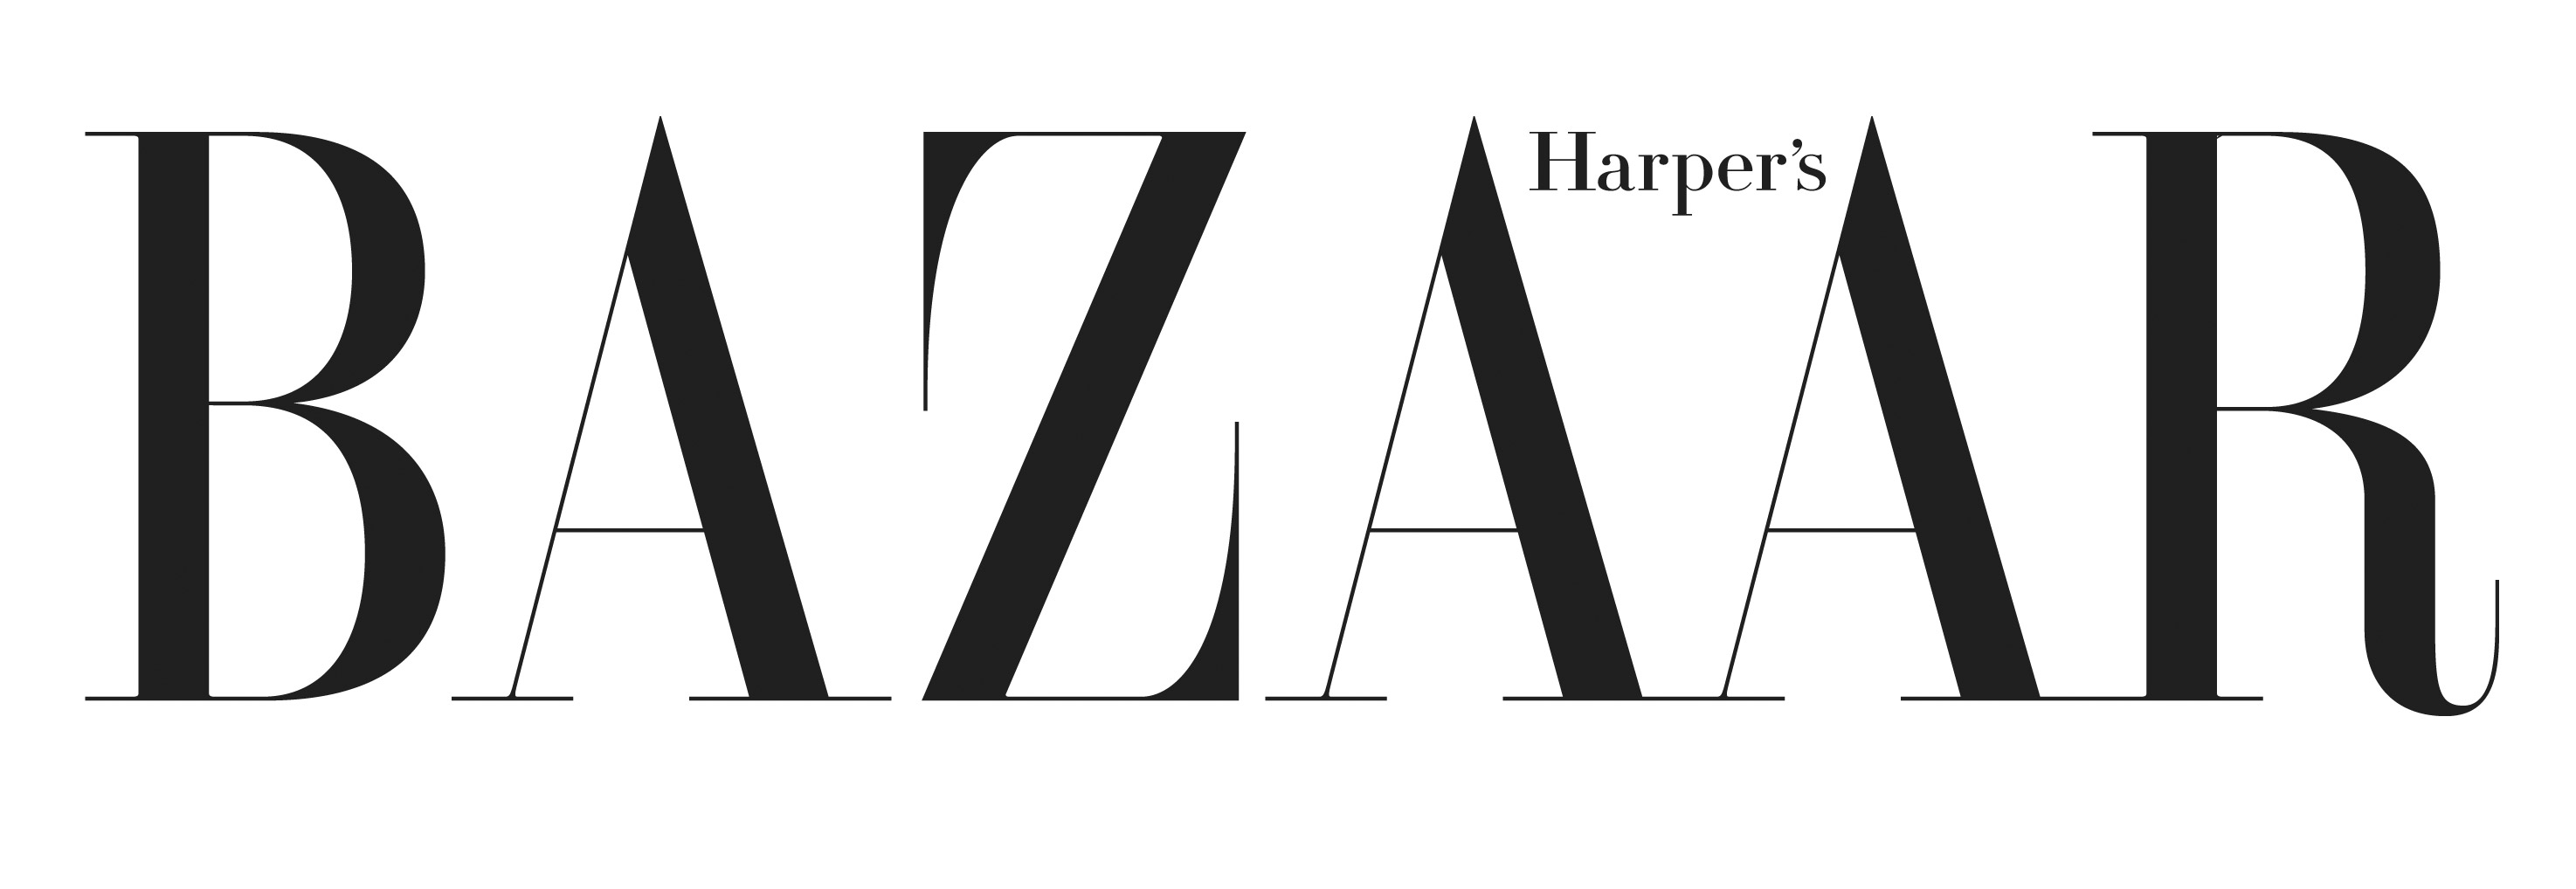 Image result for bazaar logo